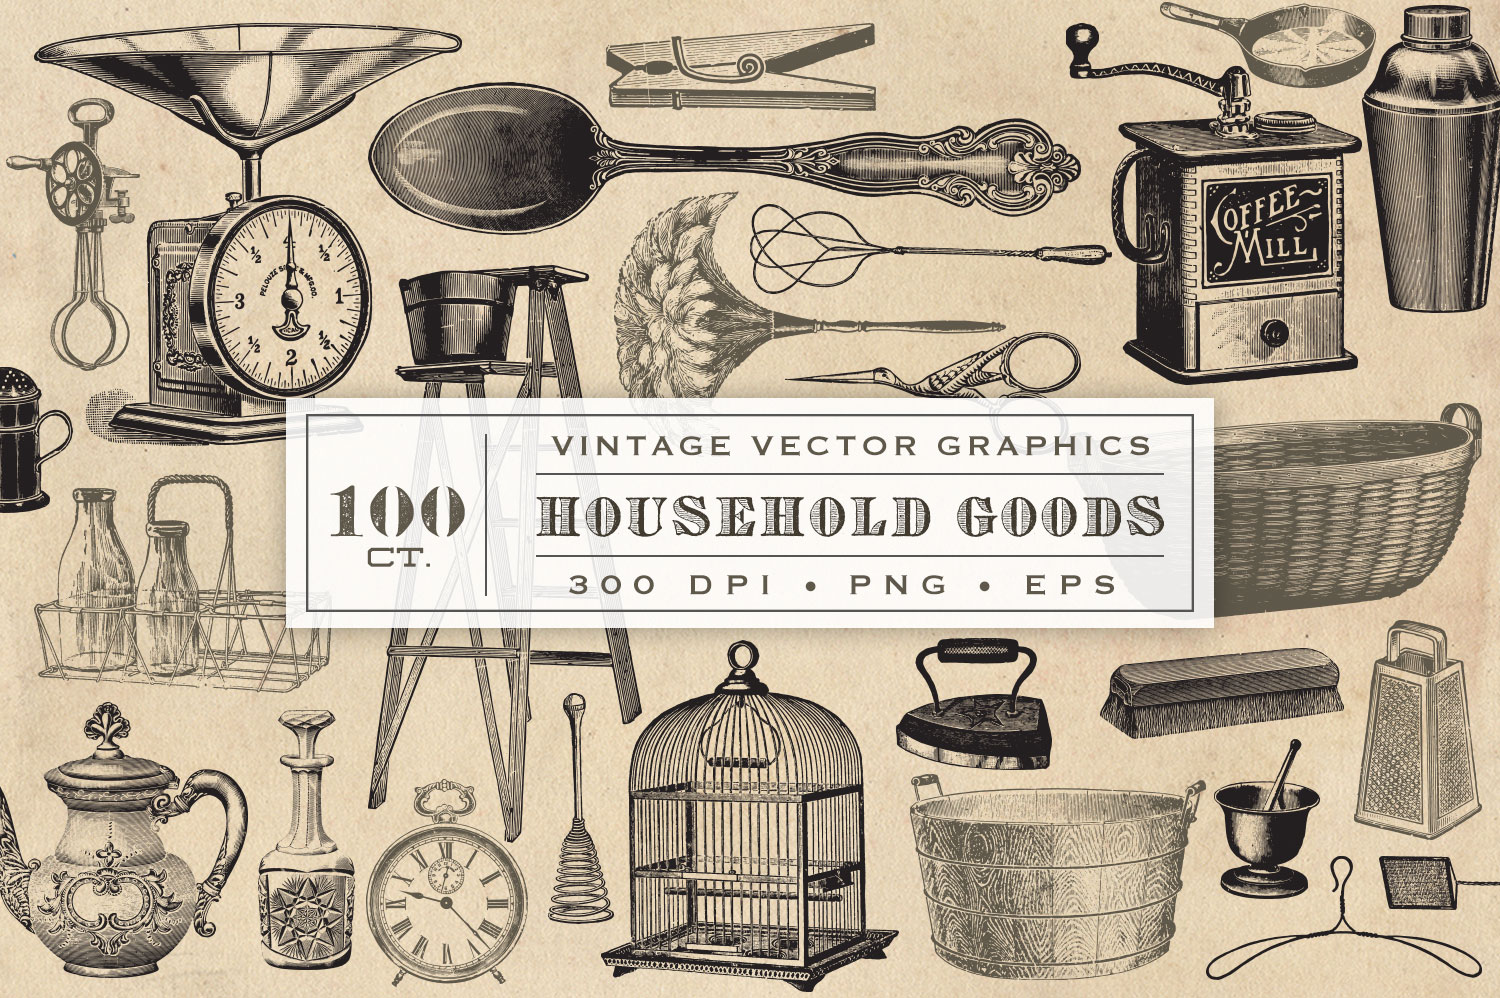 Household Goods Vector Graphics example image 1